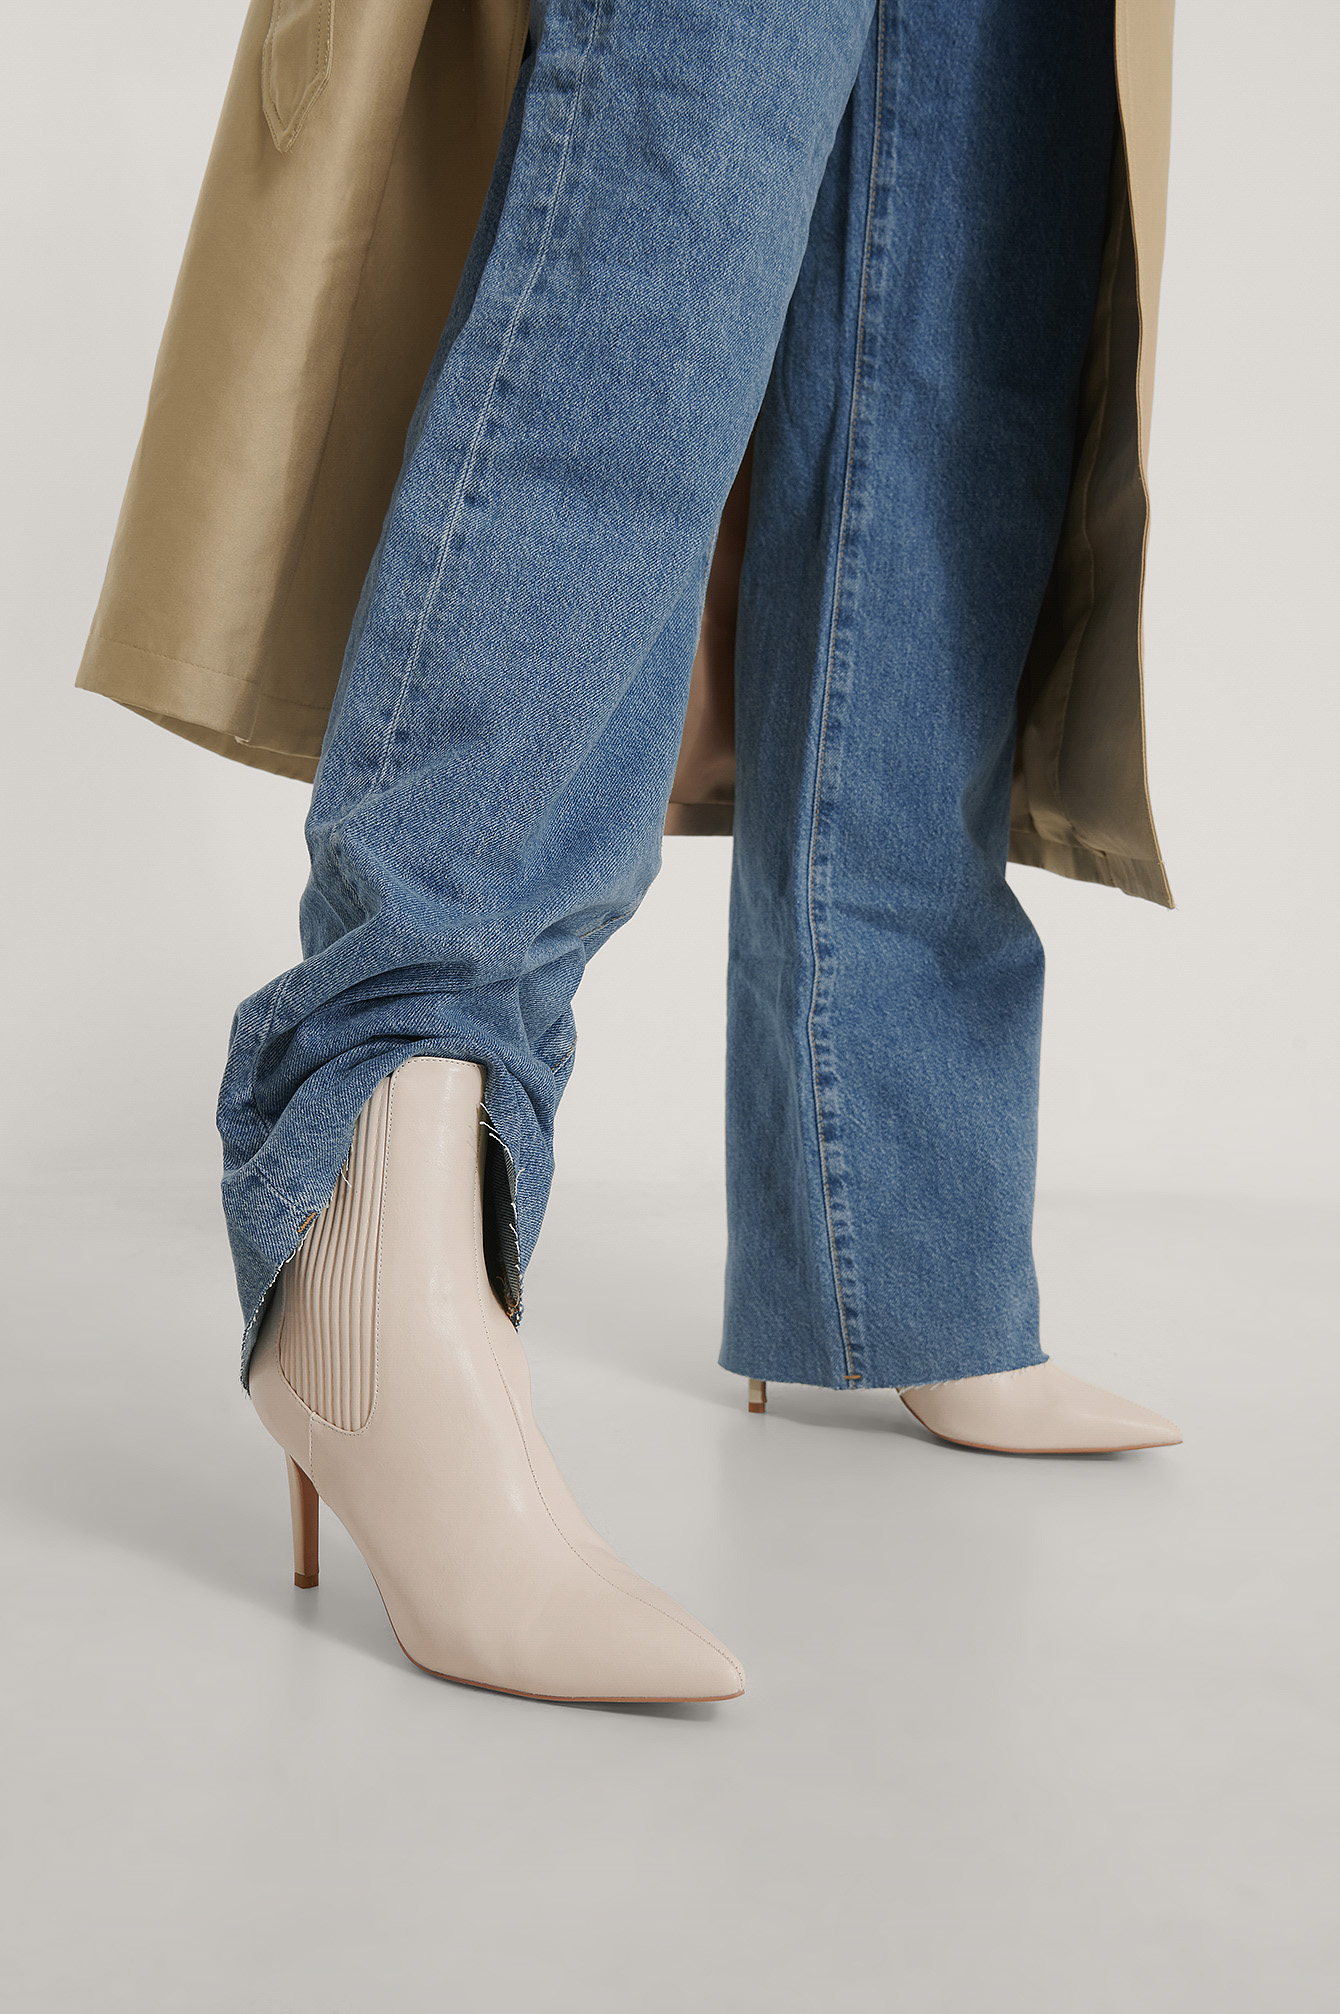 Cream Elastic Detailed Stiletto Boots